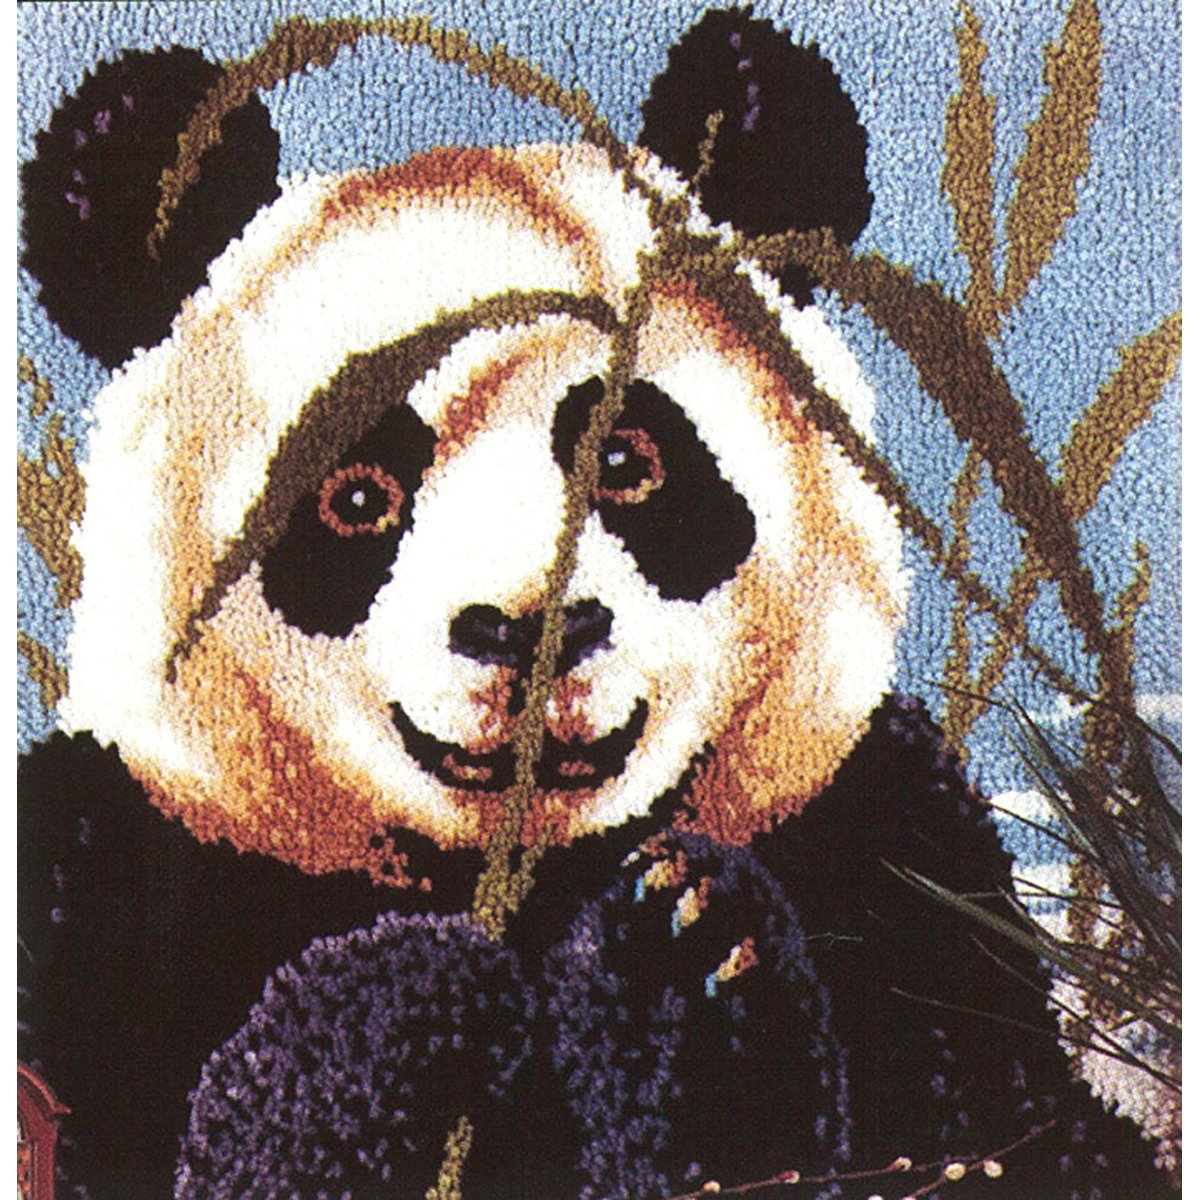 MCG Textiles 37629 Peeking Panda Latch Hook Rug Kit